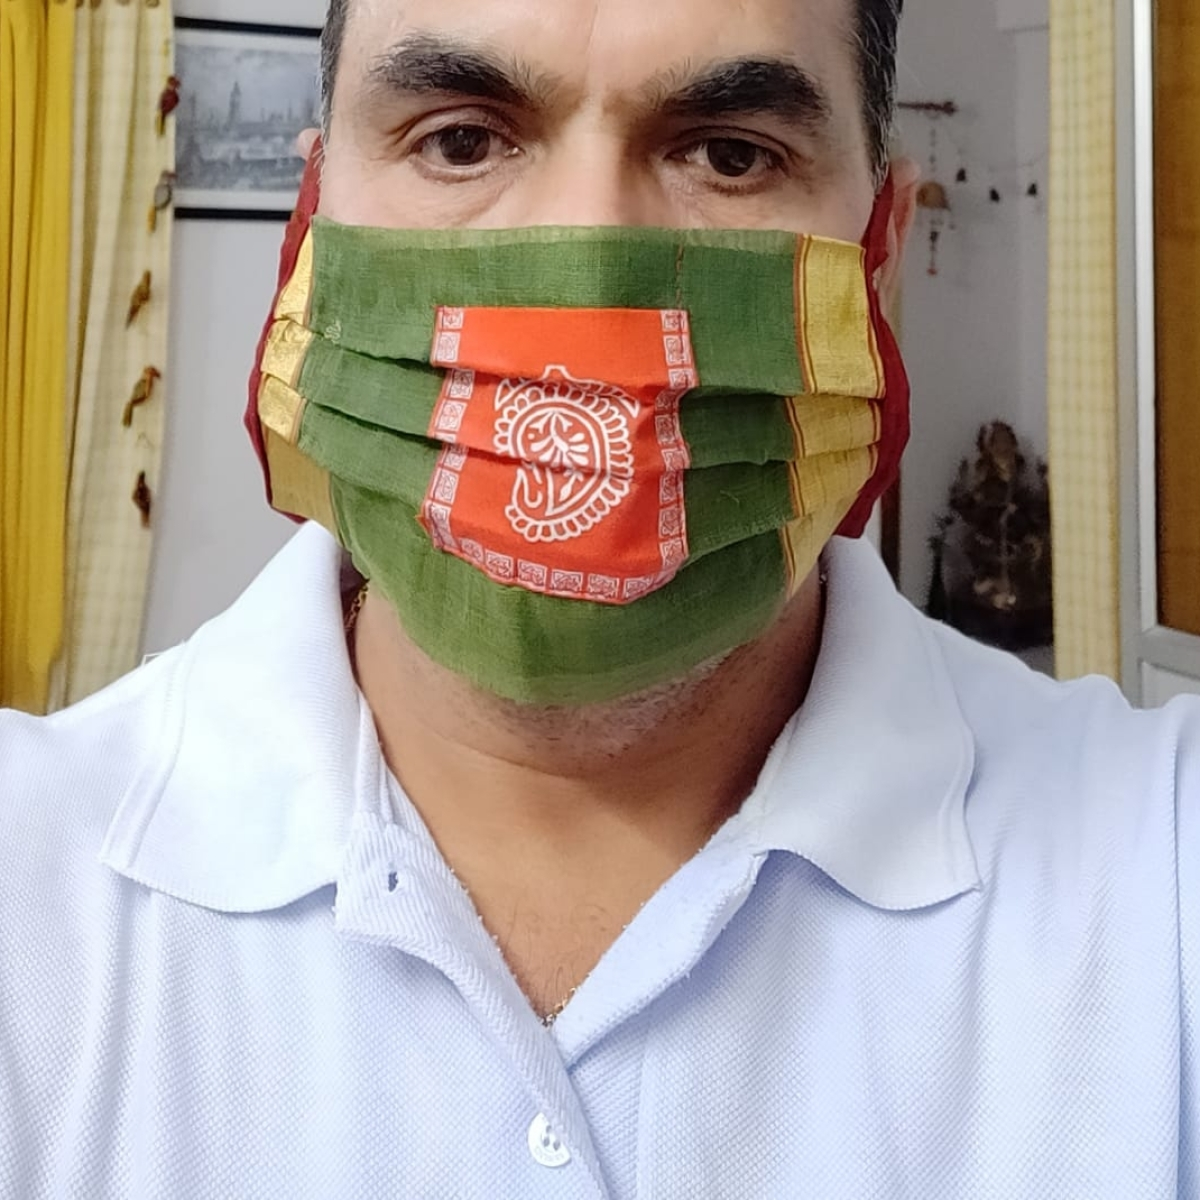 Fashion amid coronavirus: MP Handloom's printed and traditional masks fading pandemic stress